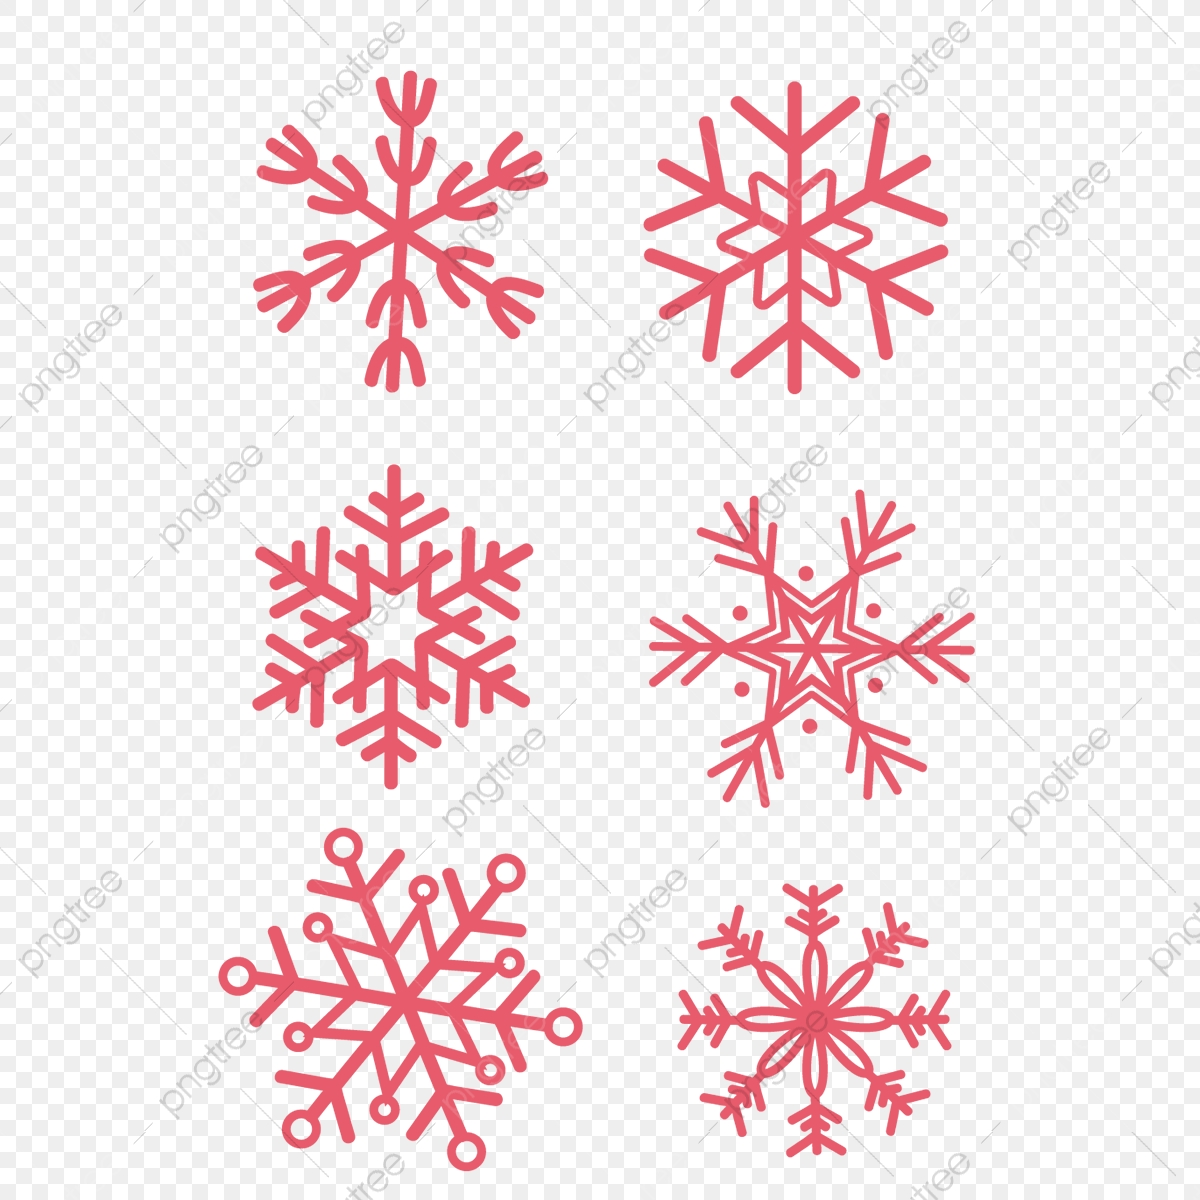 Dessin Anime Simple Peint A La Main Flocon De Neige Vecteur Materiel Decoratif Conception Collection D 039 Elements Flocon De Neige Cartoon Minimalisme Png Et Vecteur Pour Telechargement Gratuit